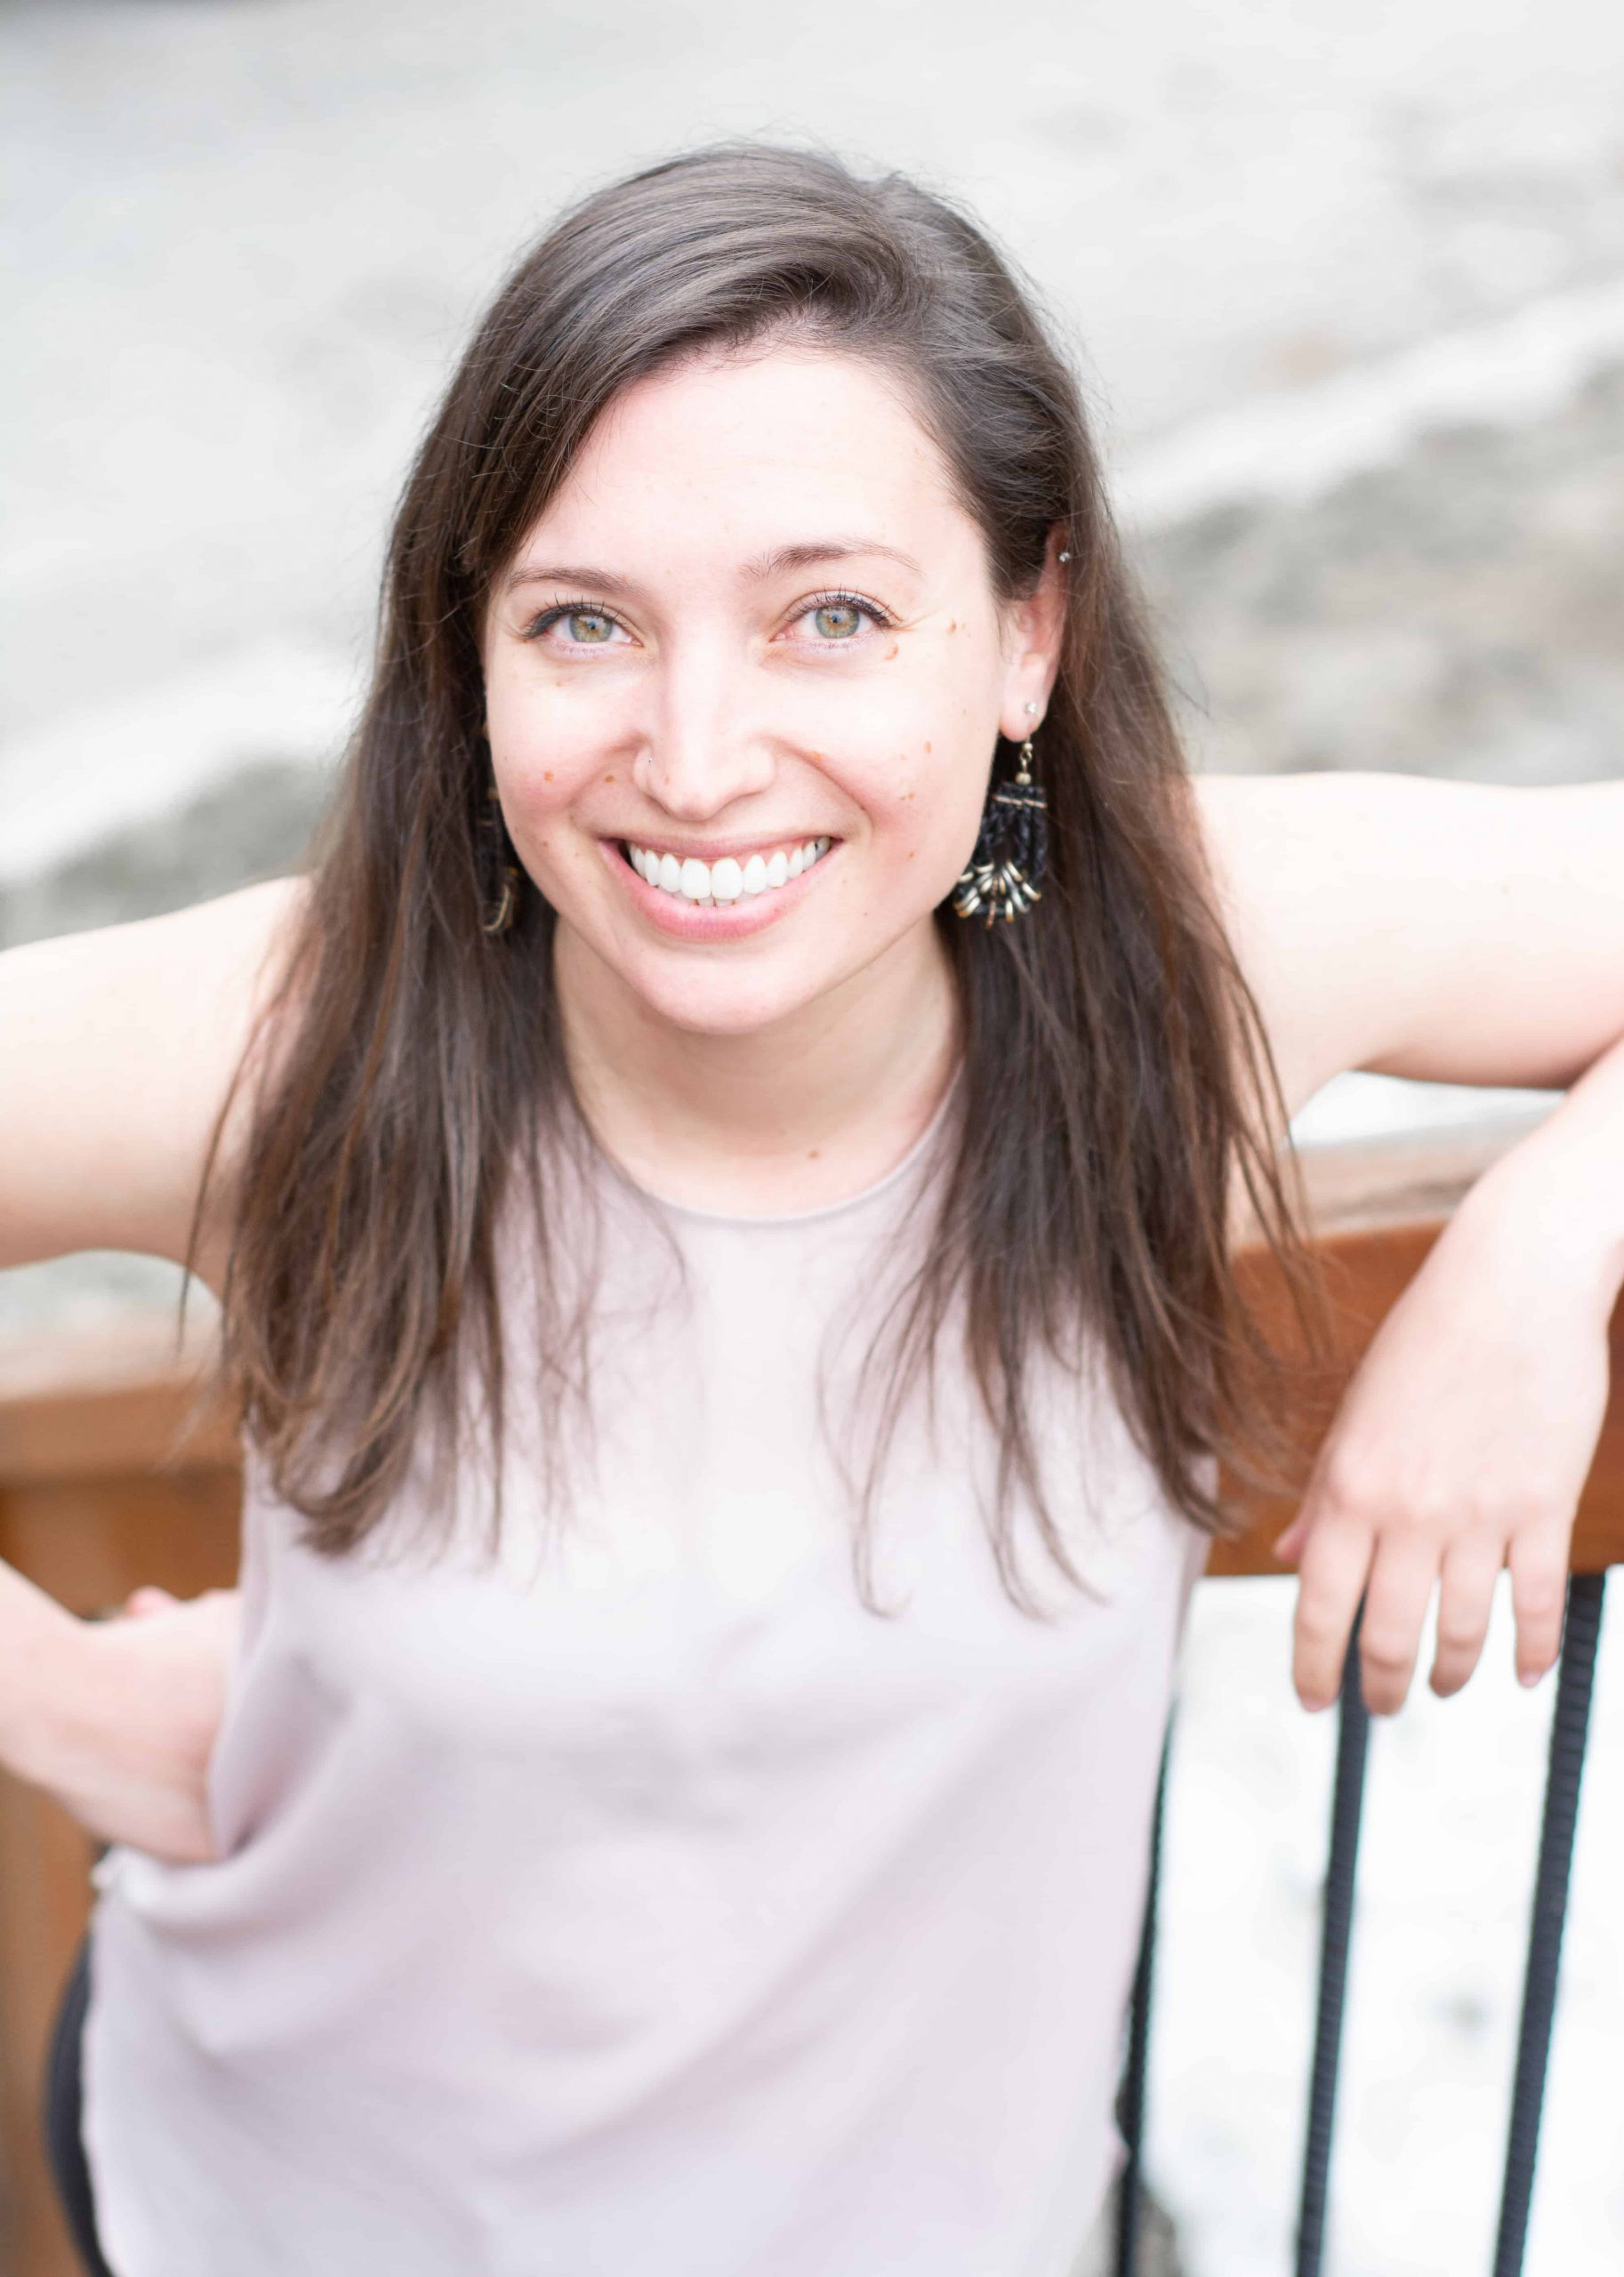 Amanda Chay Interview - Naturopathic Physician and Business Consultant